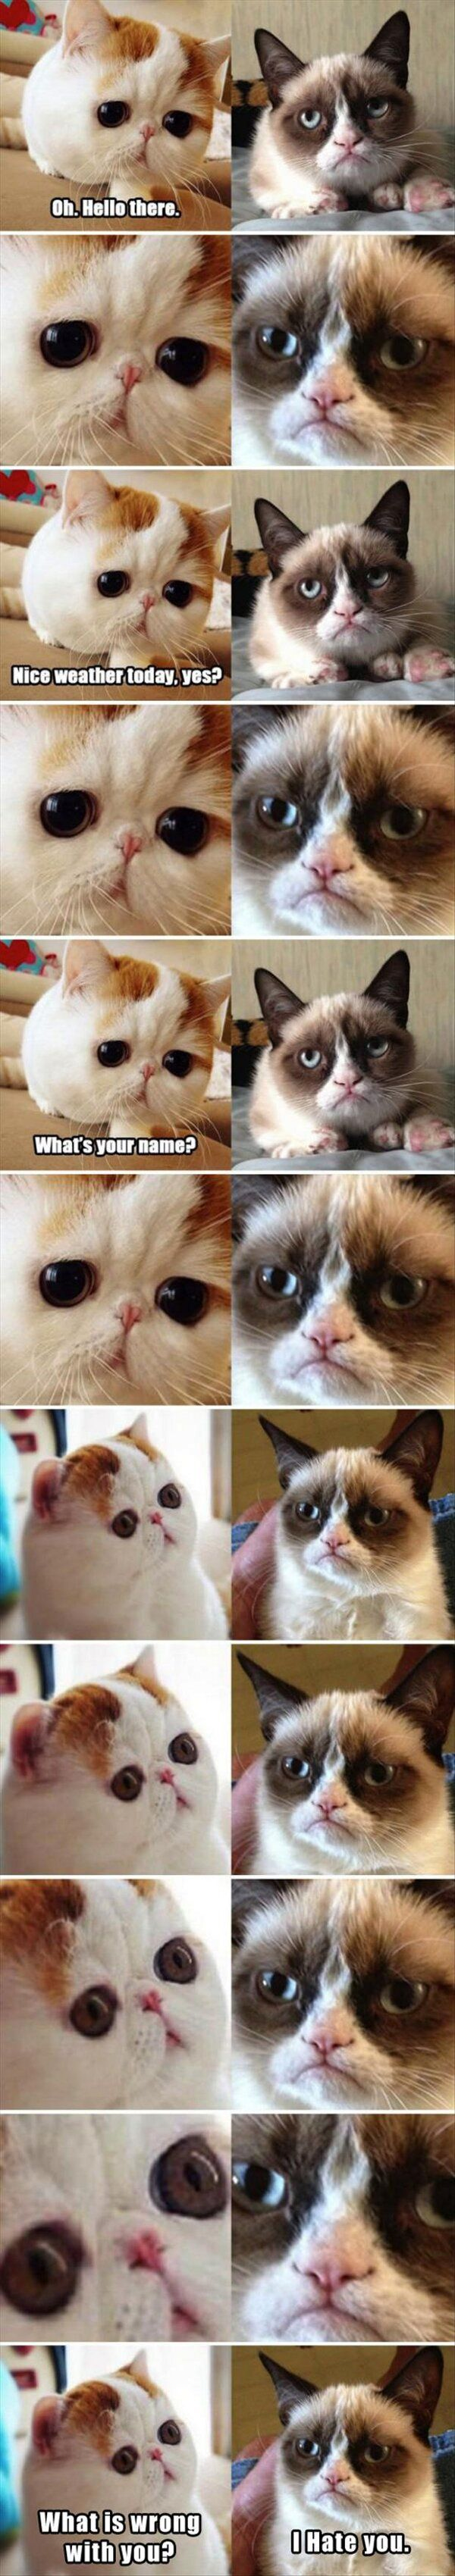 Hahahaha. But that angry cat can be mean! I mean look at the other cat with its beady eyes!